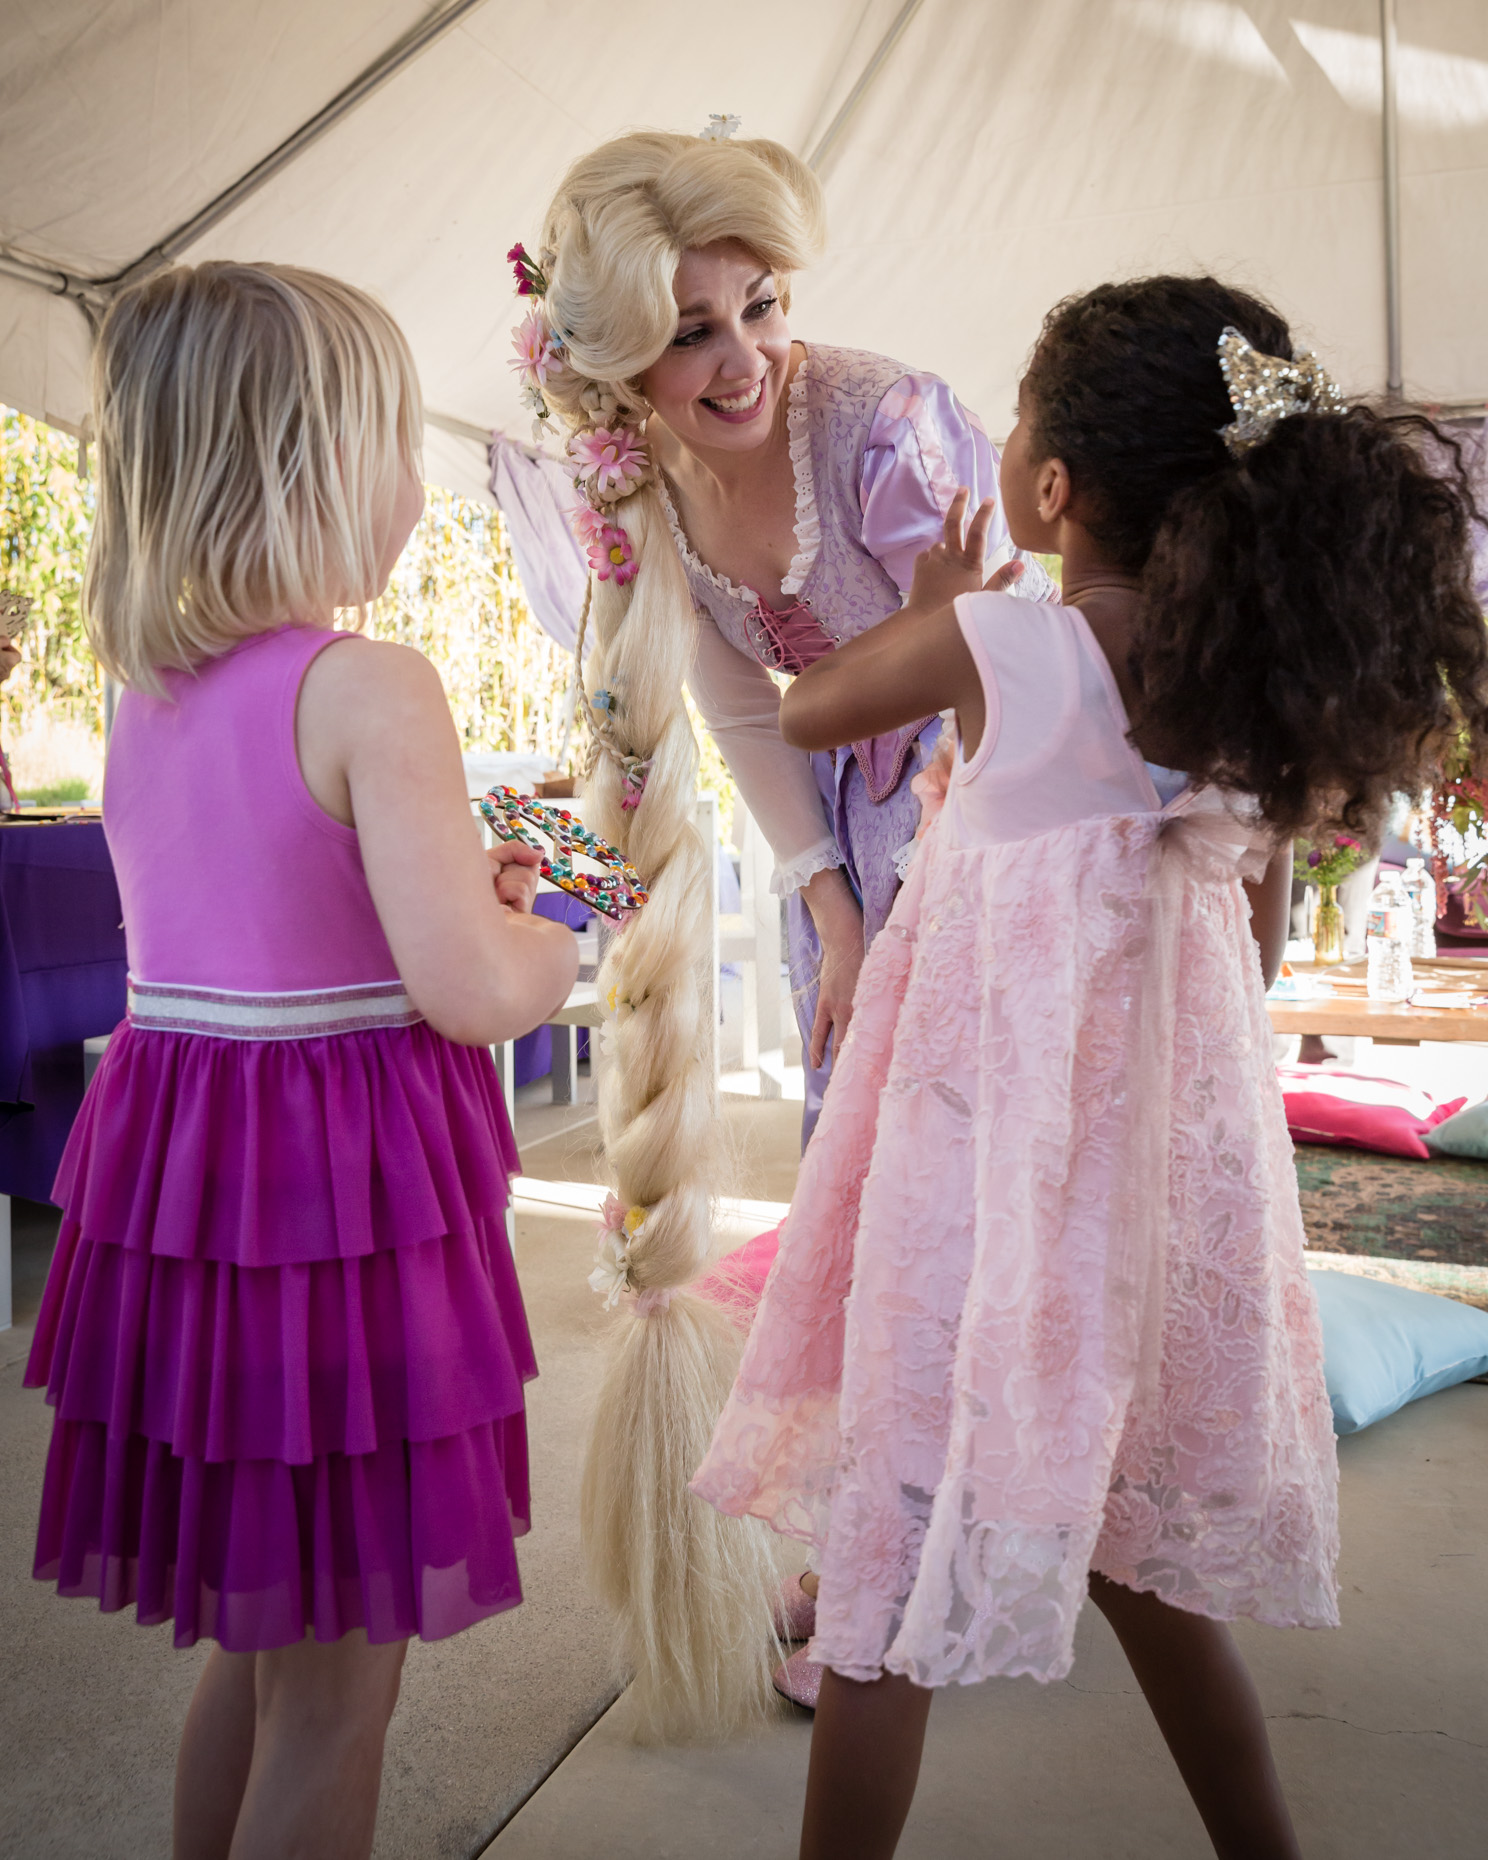 rapunzel lets her hair down party princess beverly hills.jpg